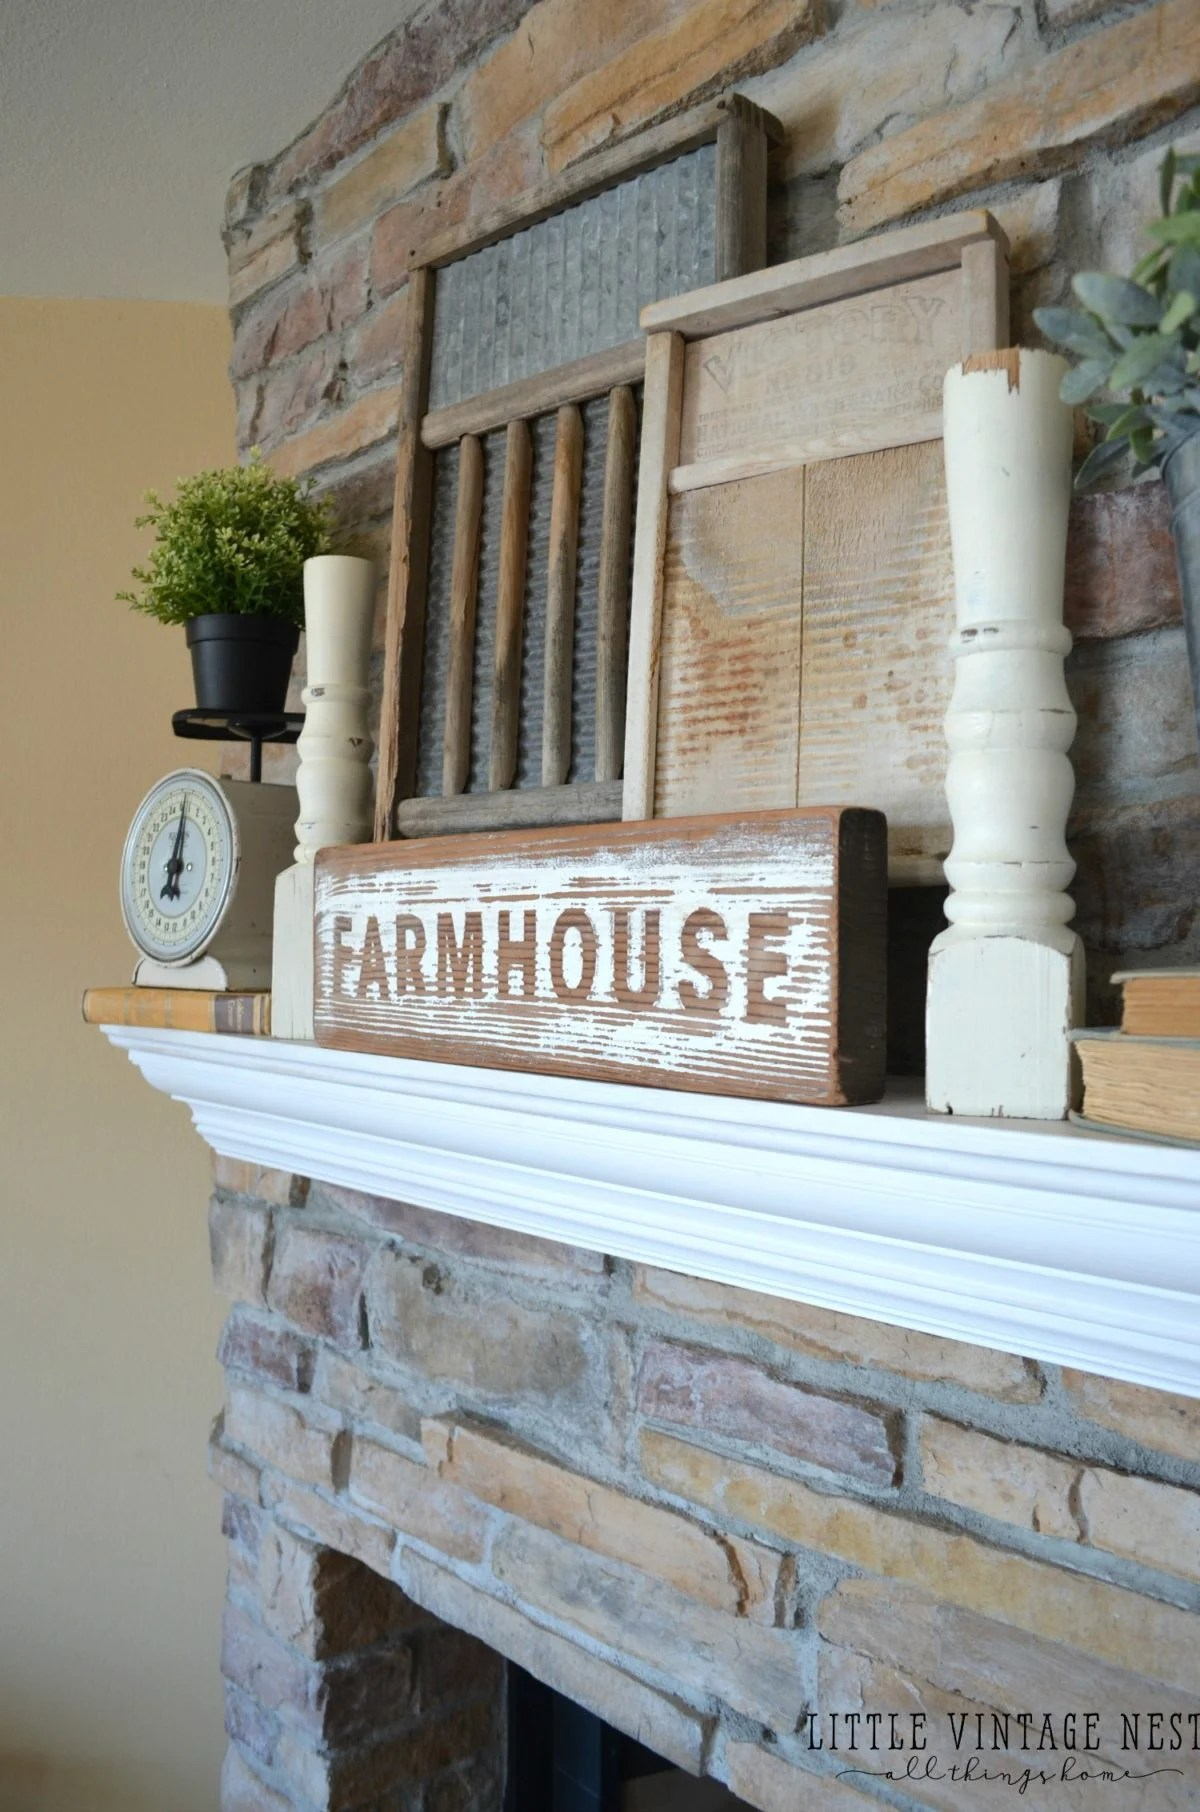 Fullsize Of Farmhouse Style Home